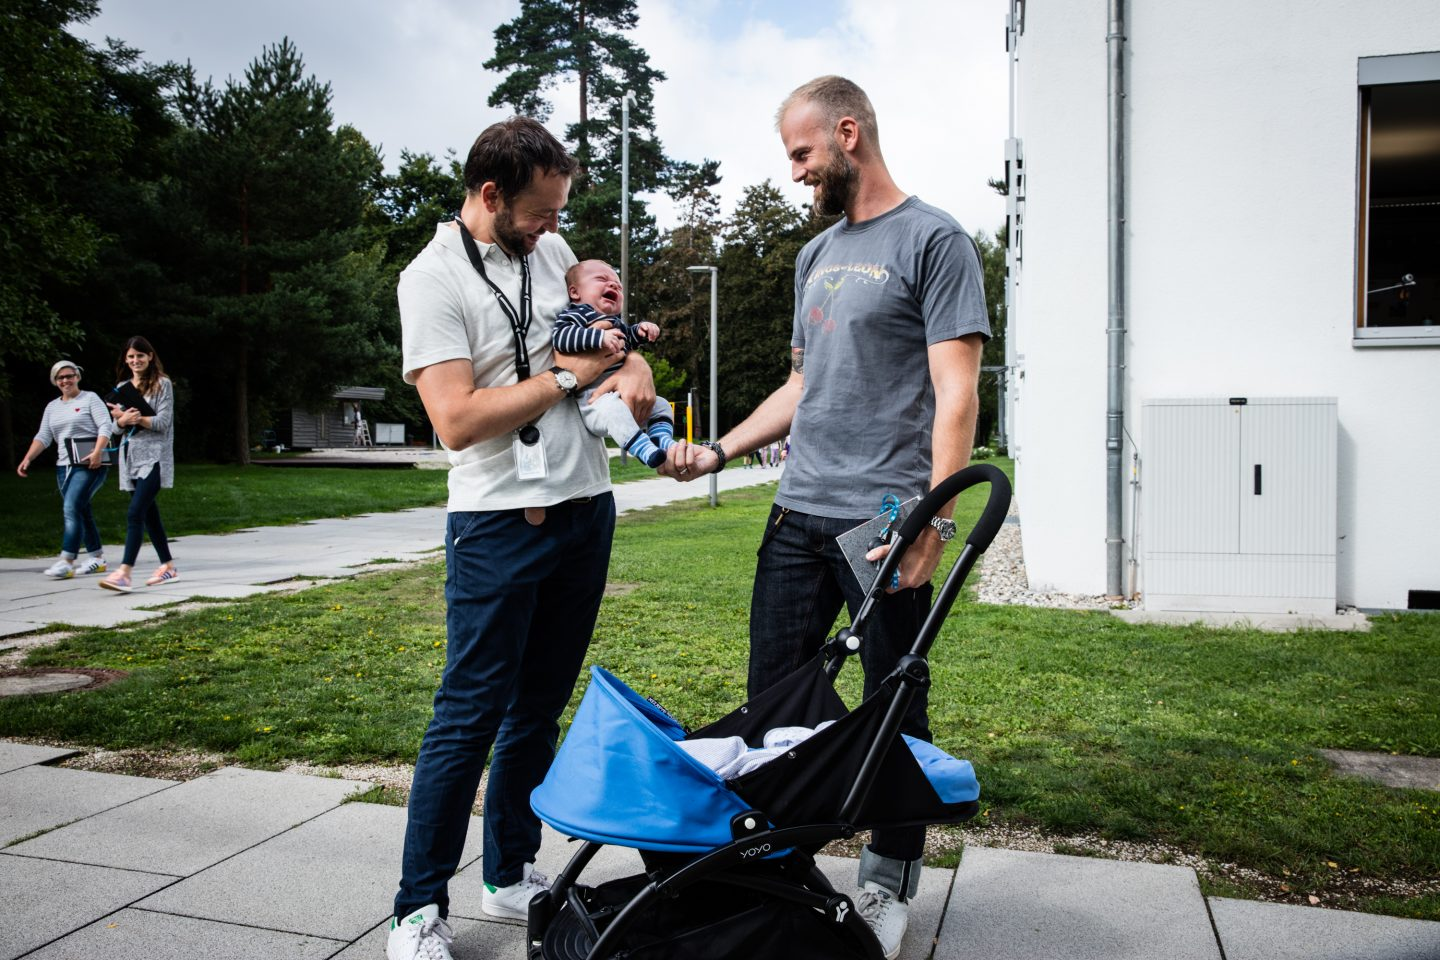 Baby_Taking Care_Parental Leave_Two guys and a baby_Outside